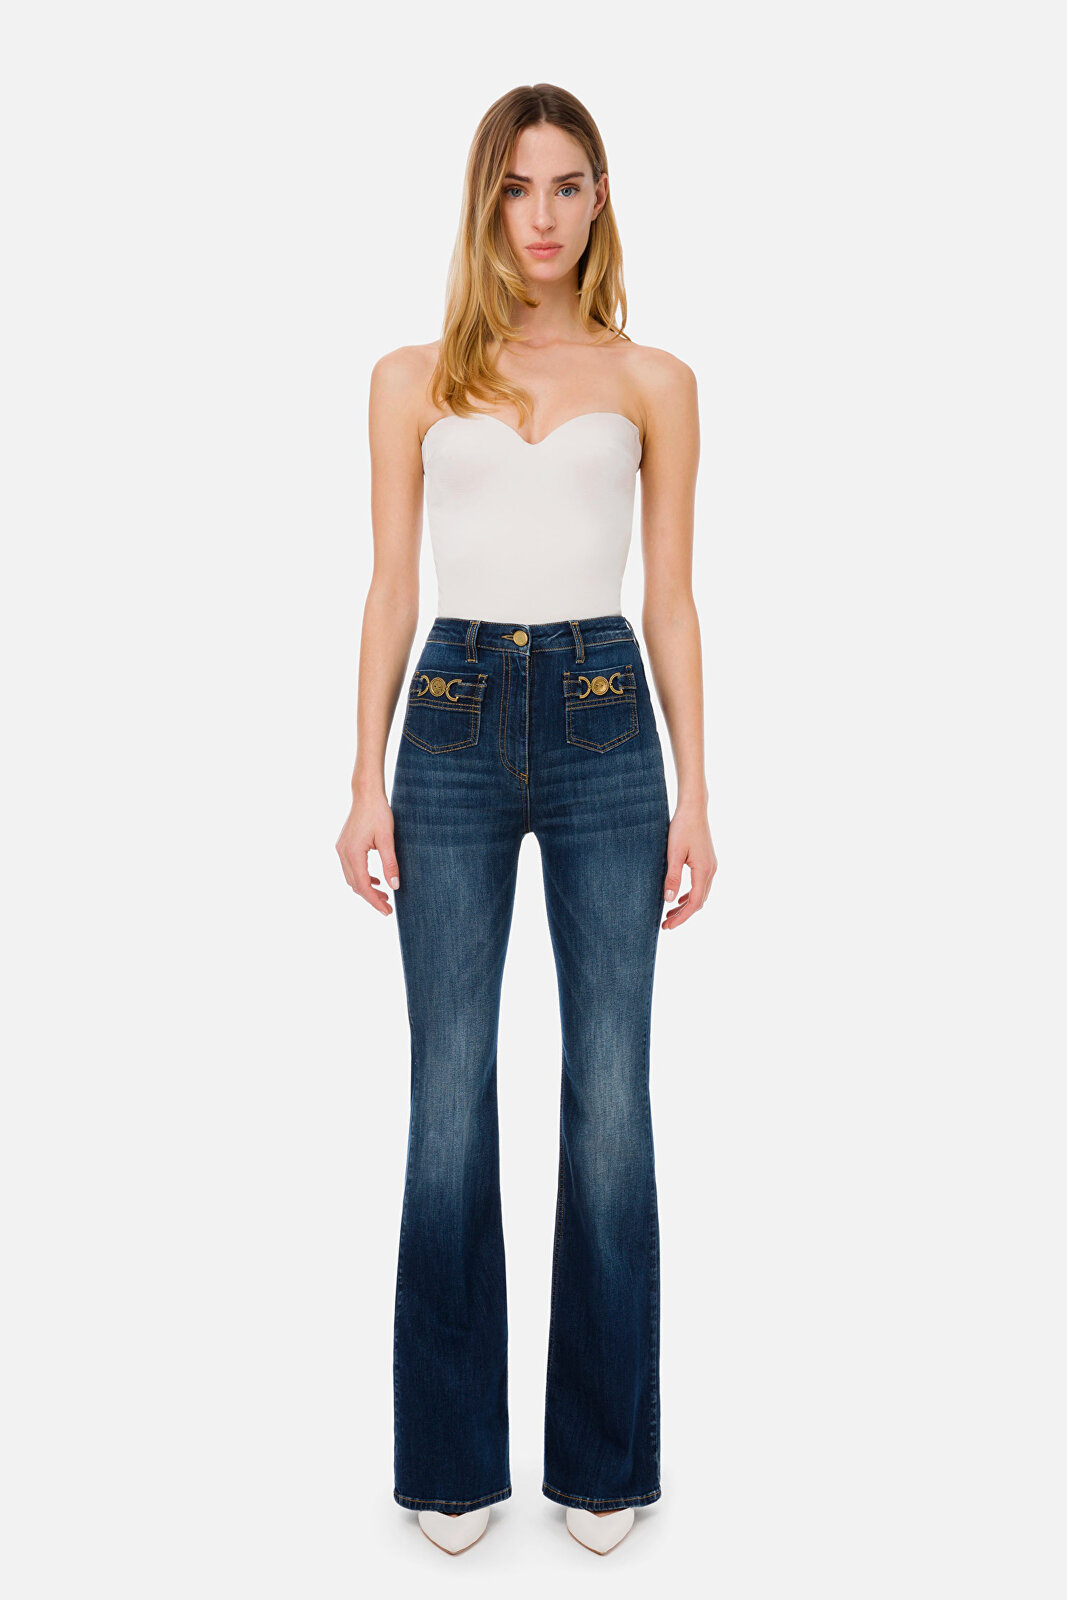 Tight Top With Bustier - Elisabetta Franchi